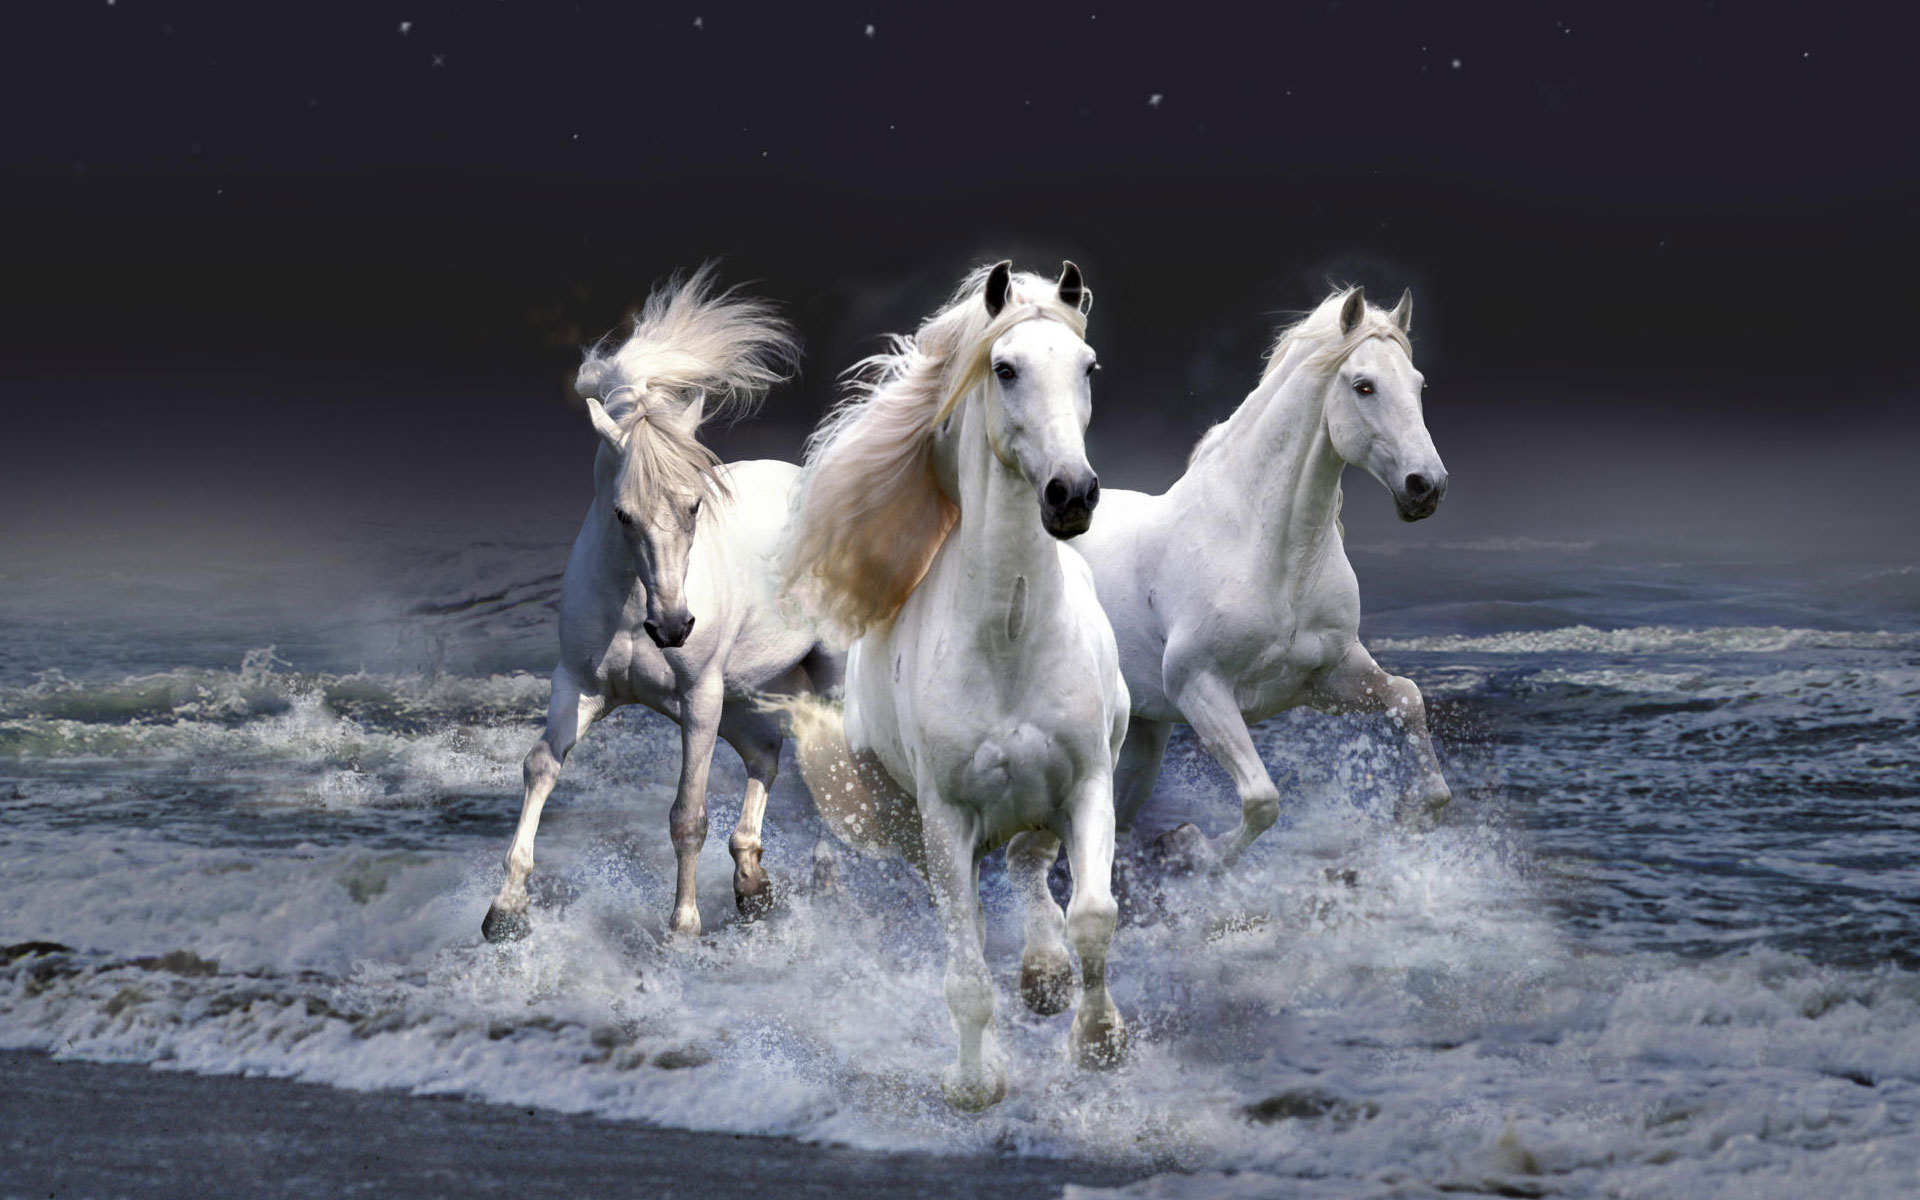 HD Wallpapers Mystic Horses